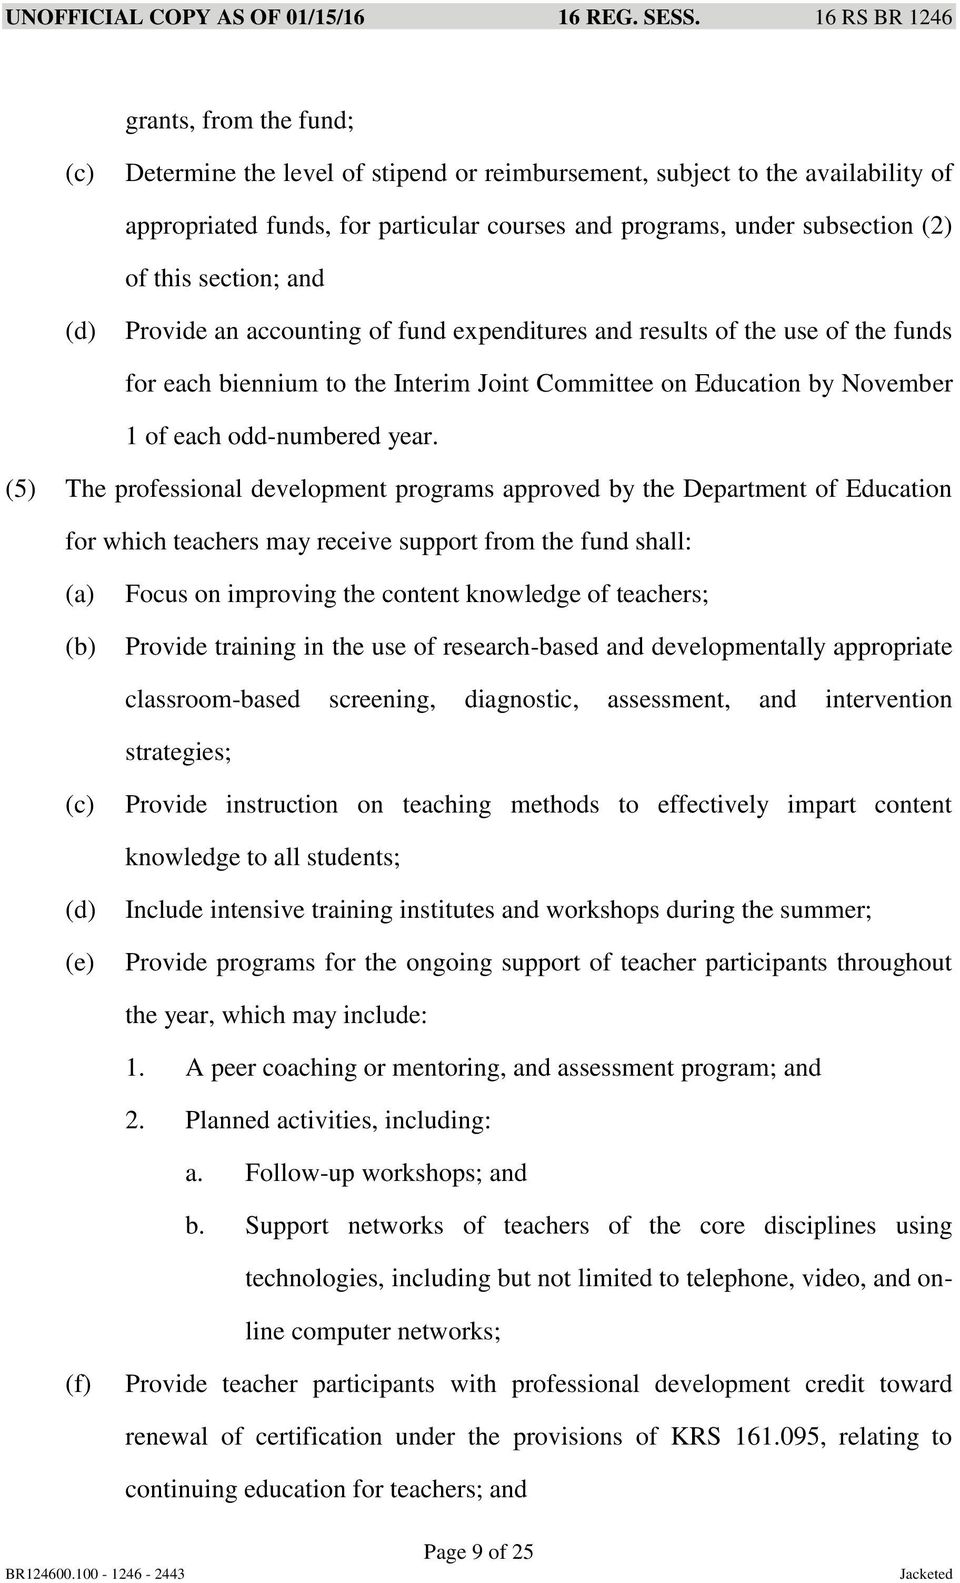 (5) The professional development programs approved by the Department of Education for which teachers may receive support from the fund shall: Focus on improving the content knowledge of teachers;